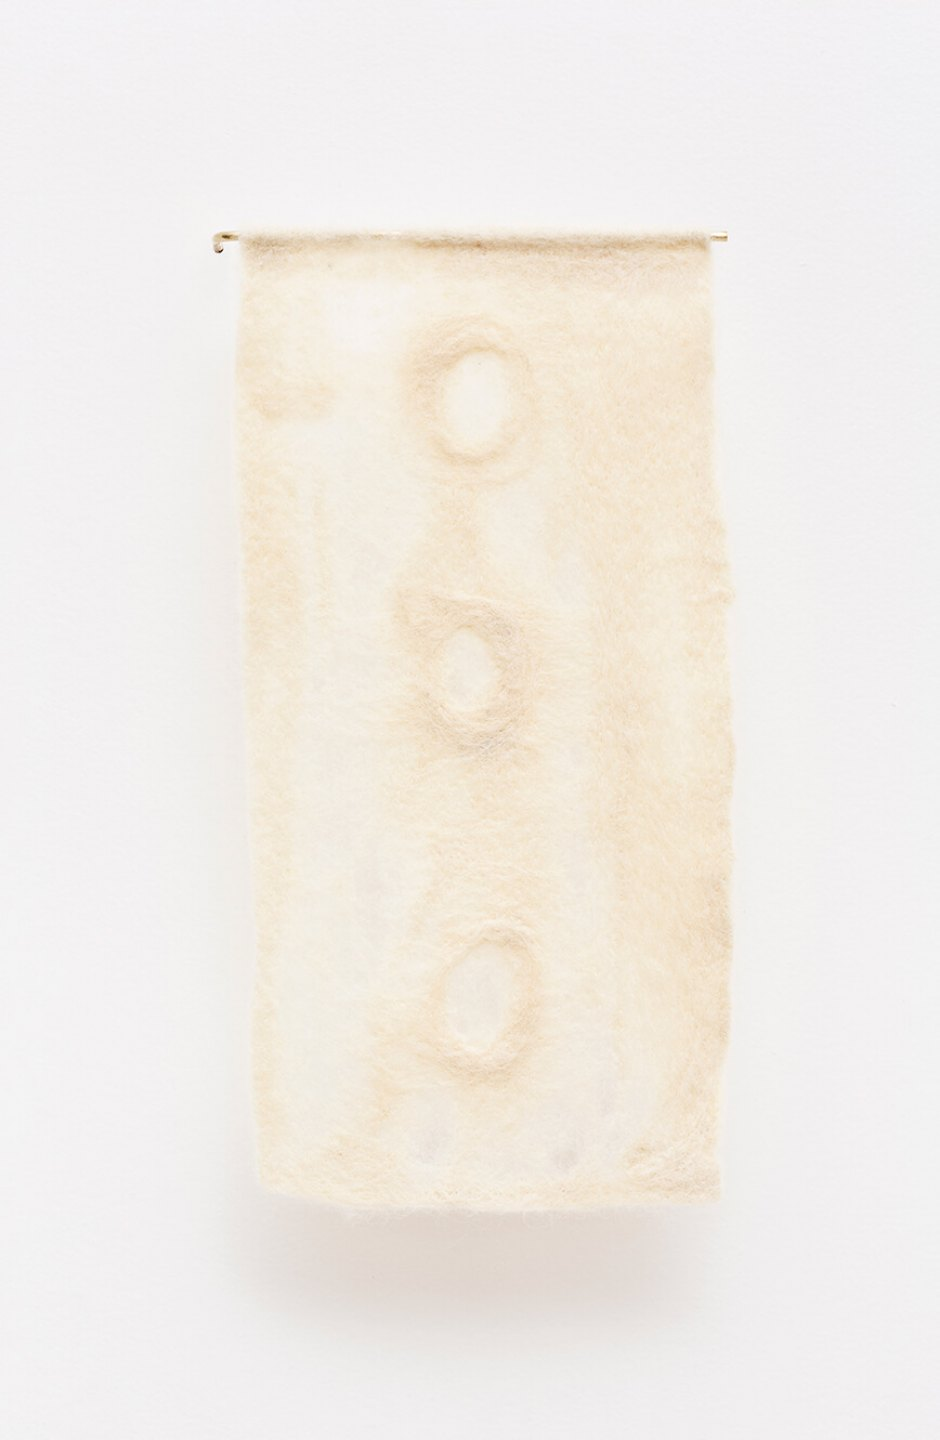 Paloma Bosquê, <em>Reverse</em>, 2015, wool felted by hand, dyed bee wax and brass holder, 36,5 × 17,5 cm - Mendes Wood DM